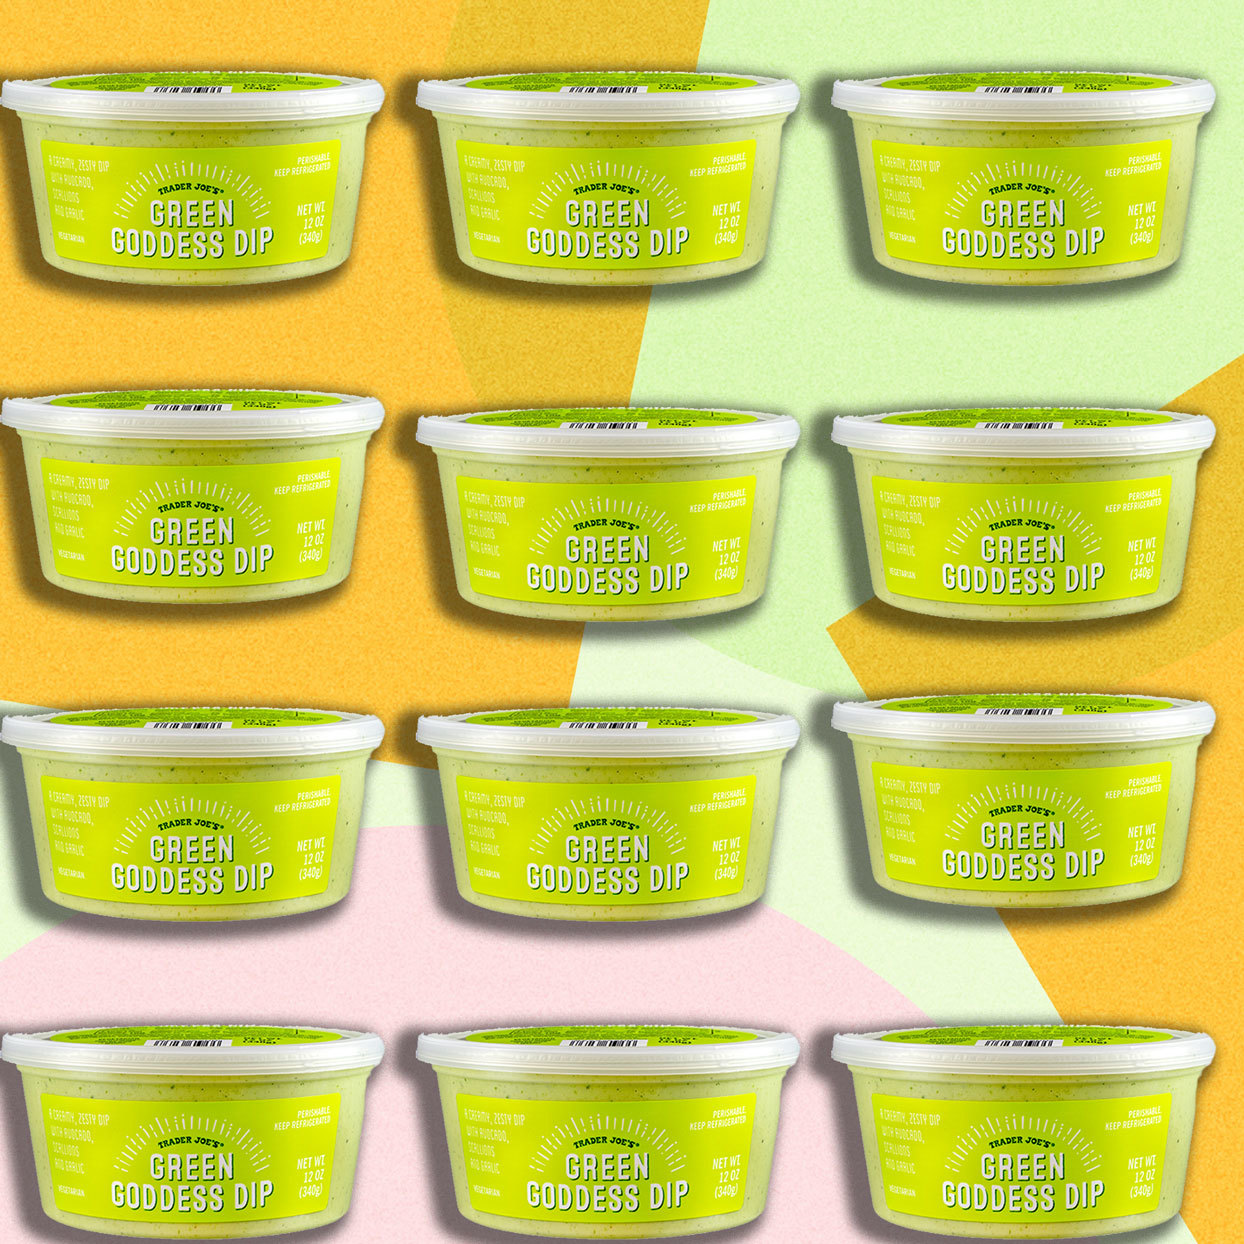 Trader Joe's Just Launched an Avocado Green Goddess Dip and We Want to Put It on Everything